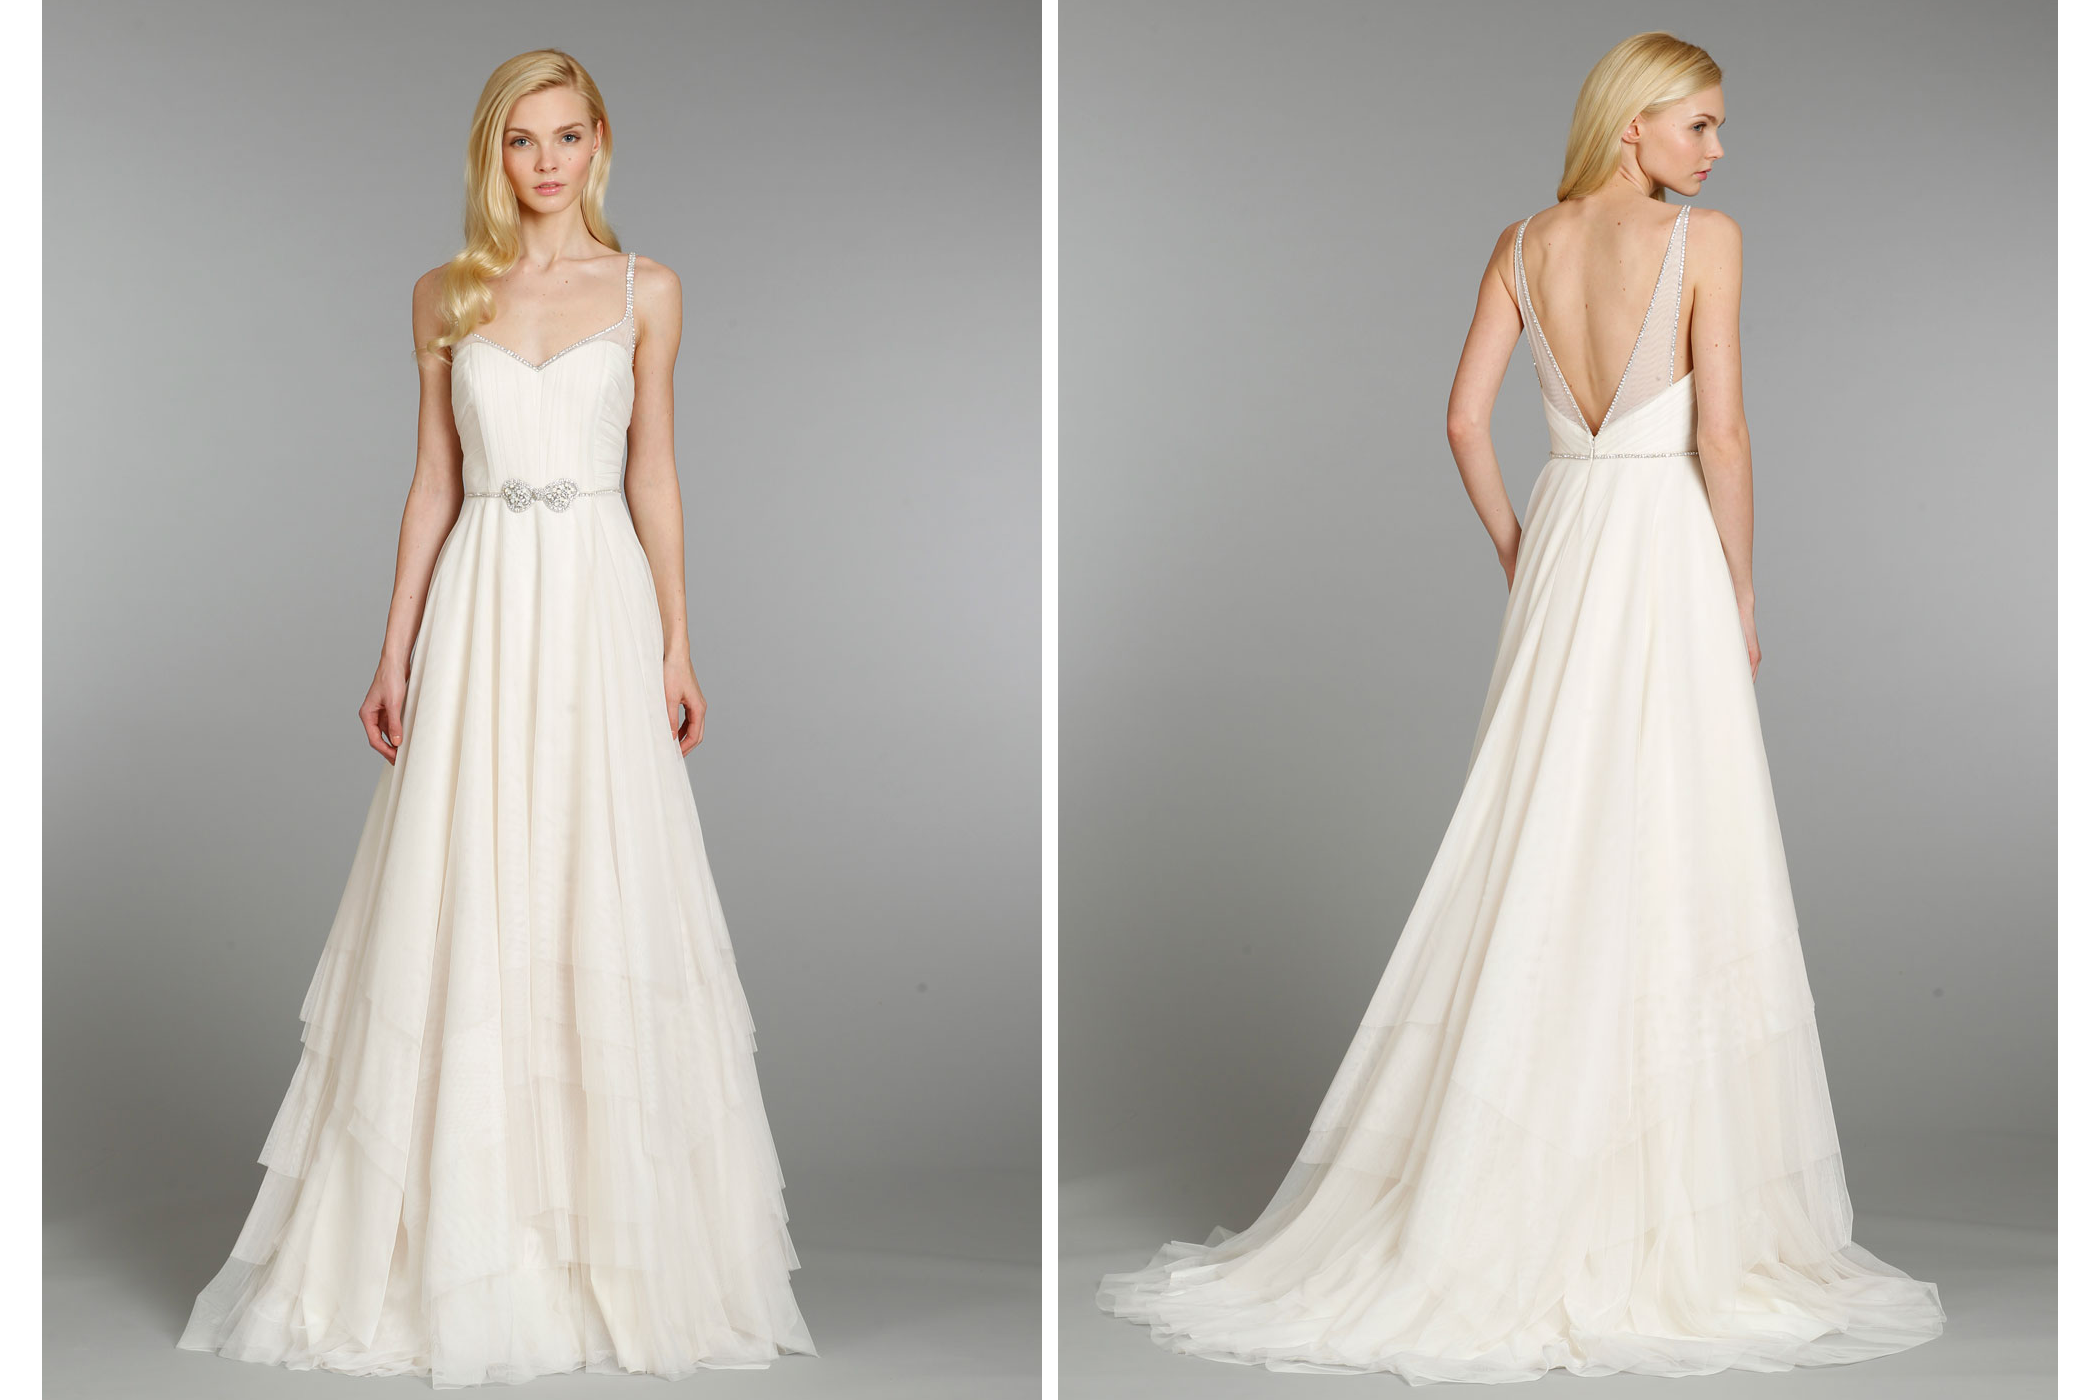 The 2014 Bridal Collections: To Be Trendy Or Classy? - Girls Of T.O.